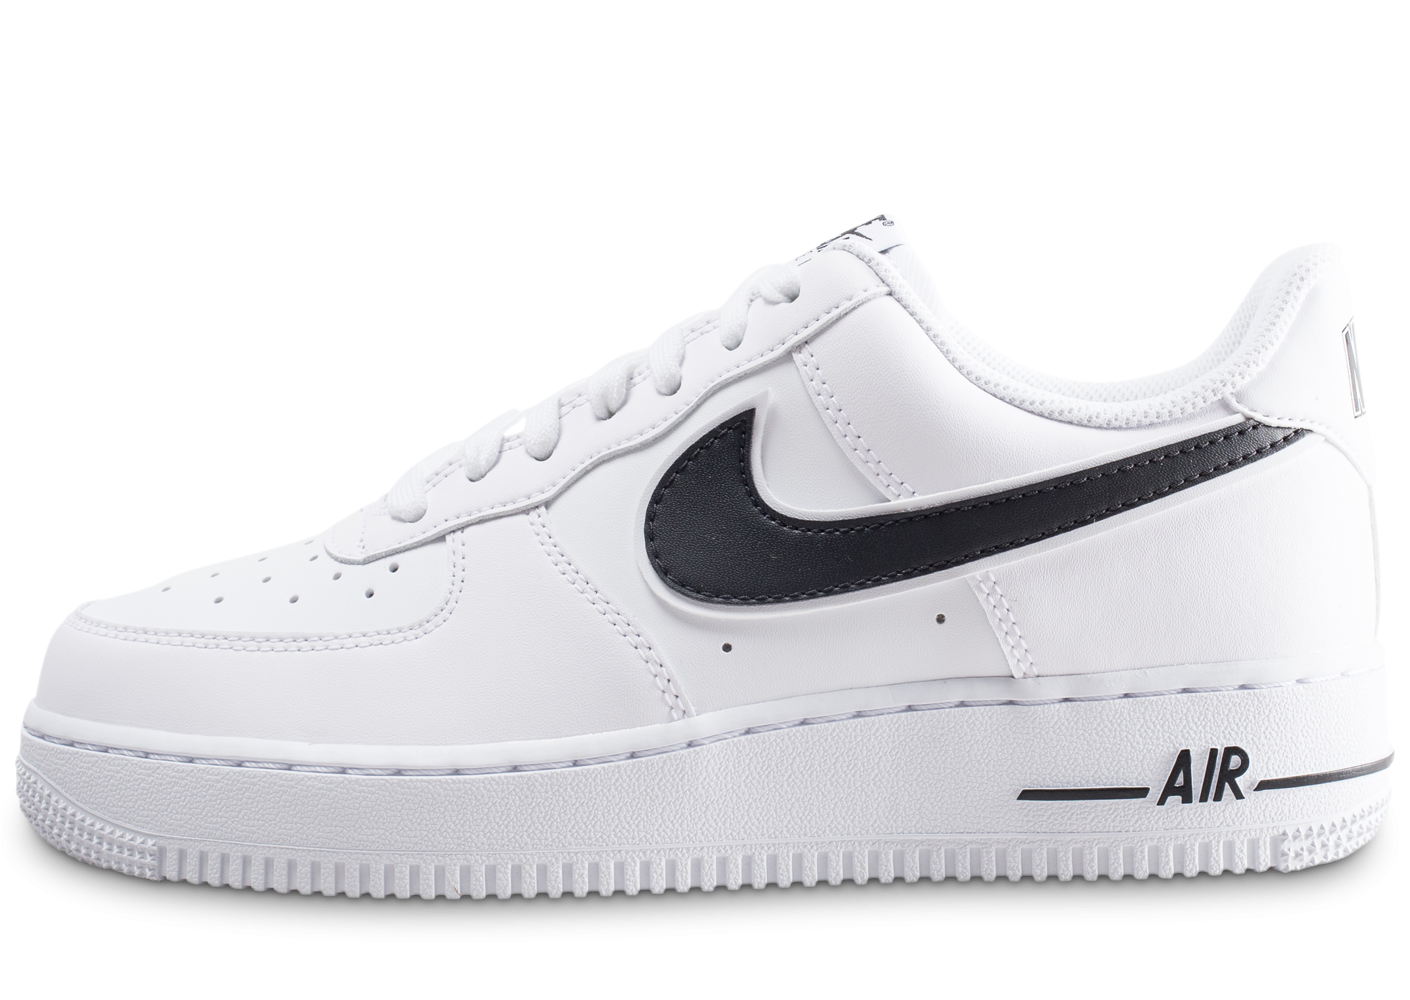 cheaper 061d3 f84f8 Nike Air Force 1  07 blanc et noire - Chaussures Baskets homme - Chausport